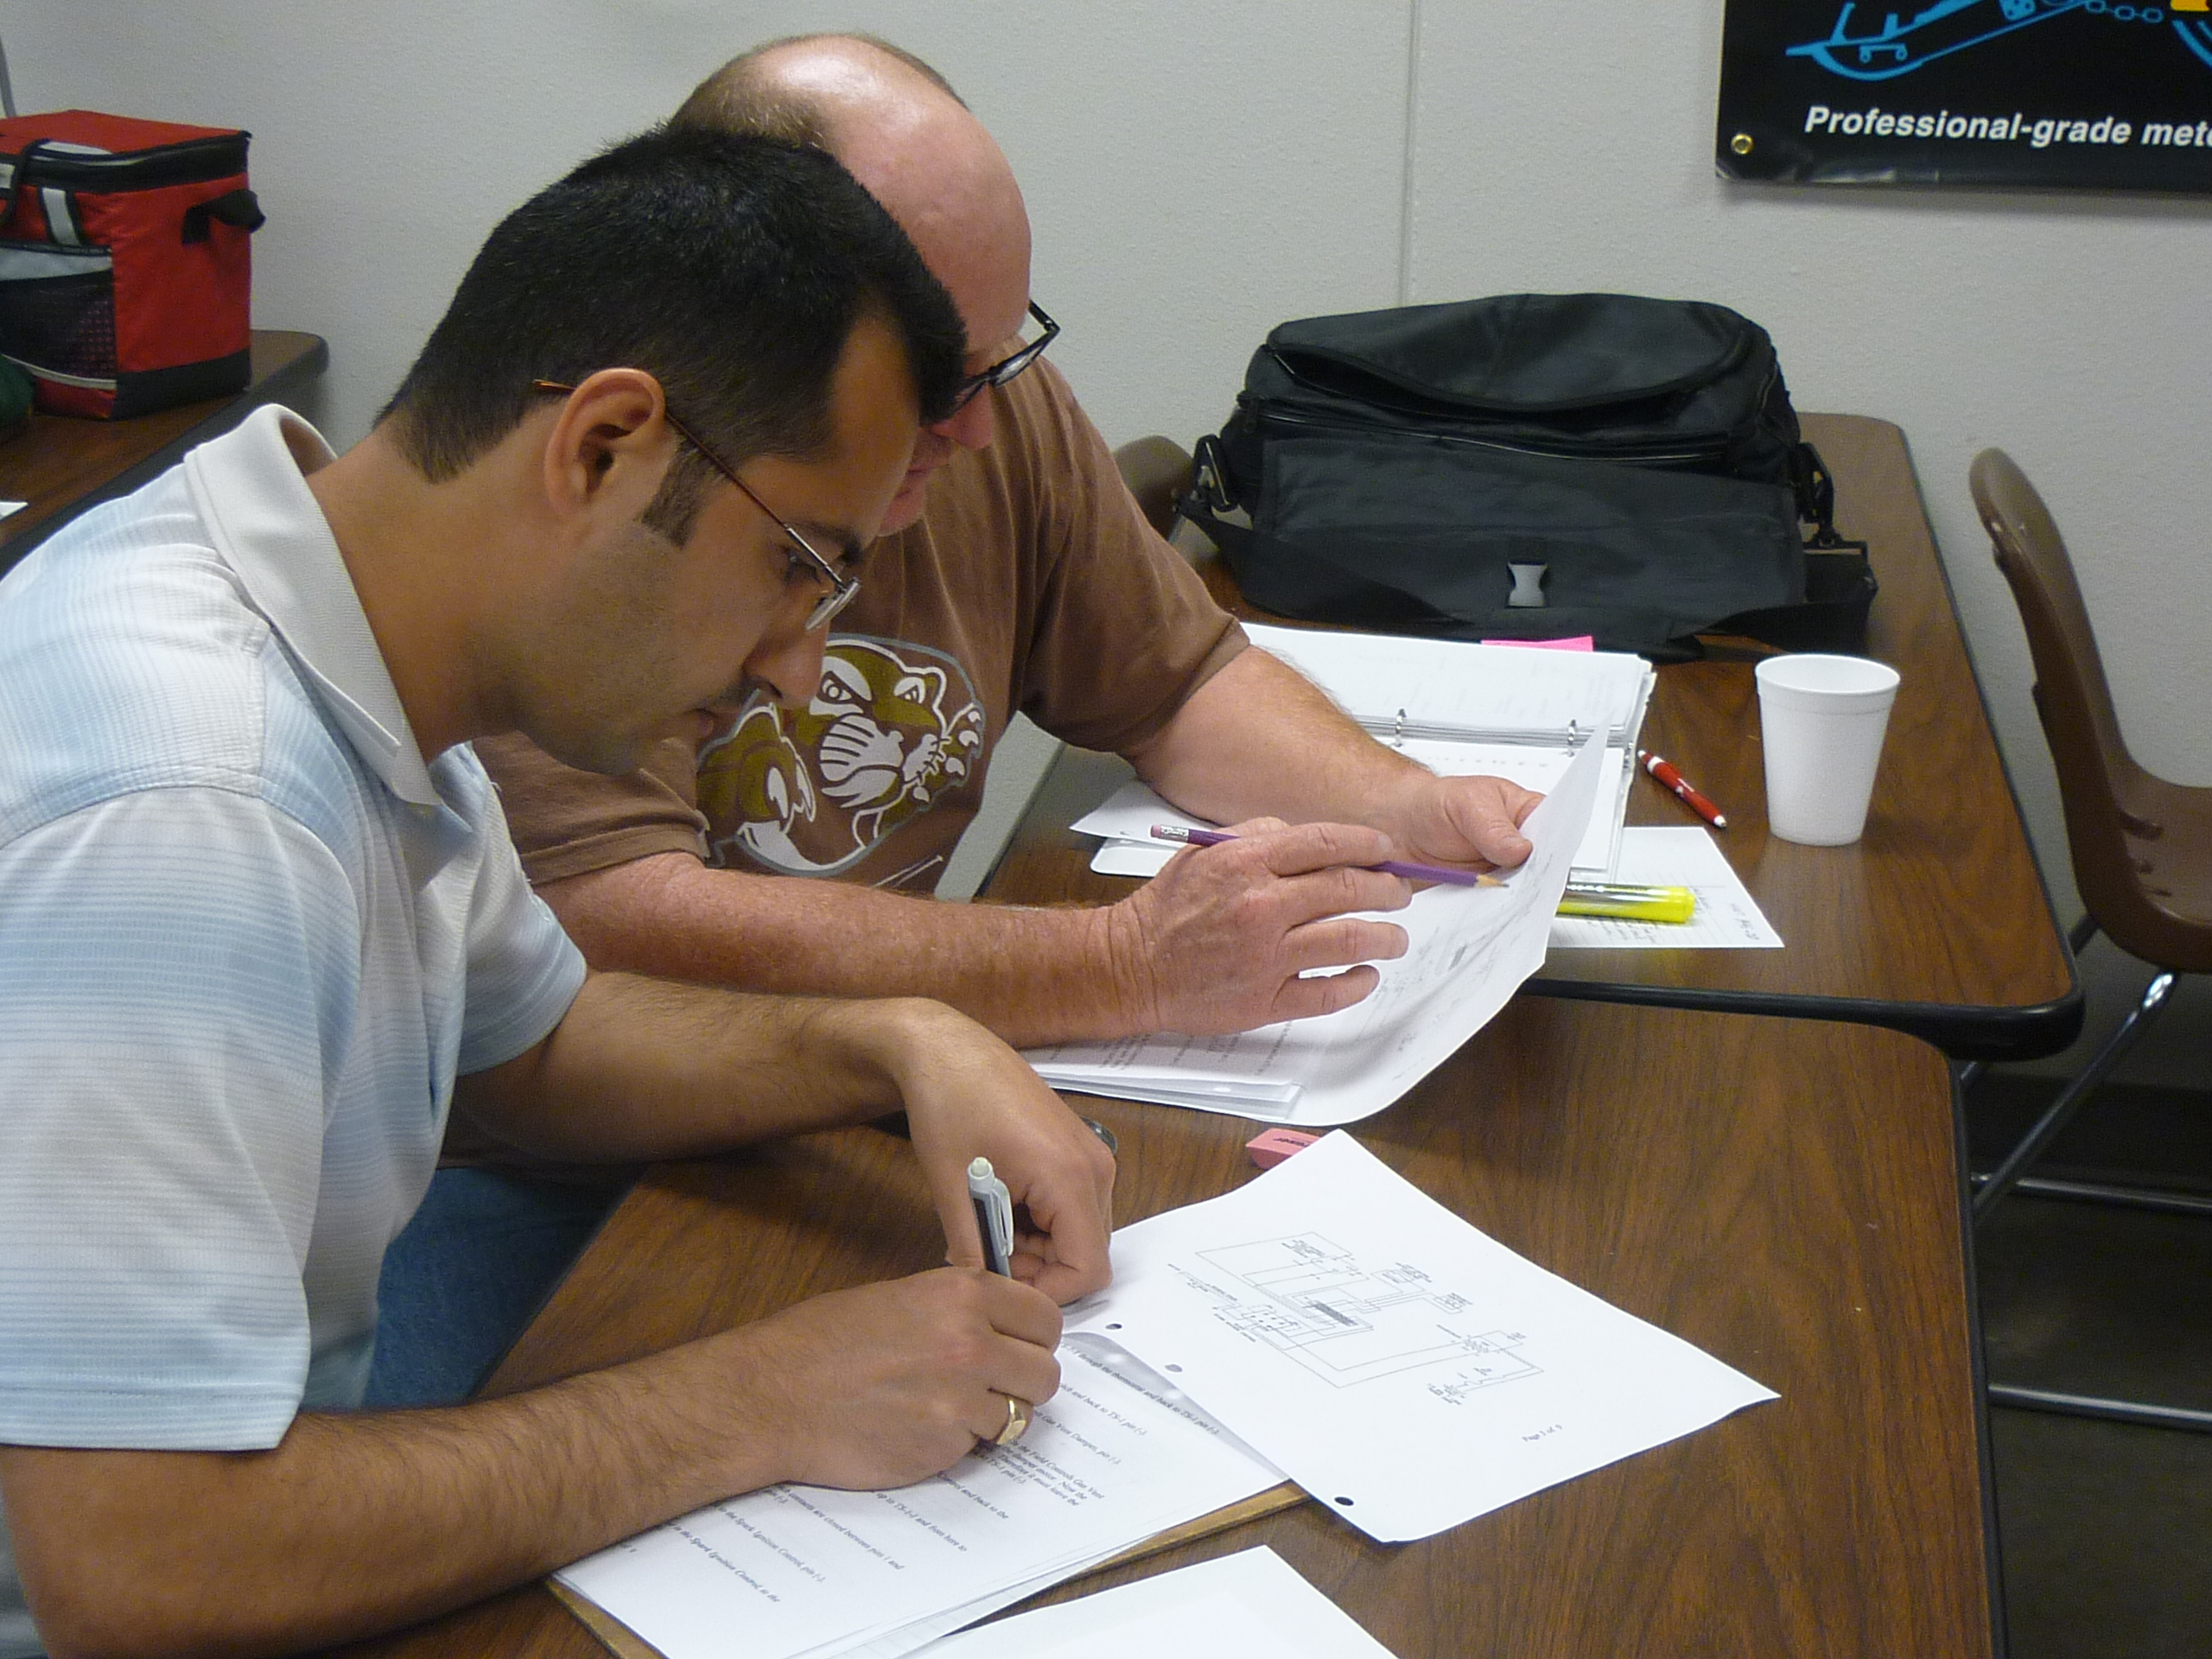 2 students reviewing schematics